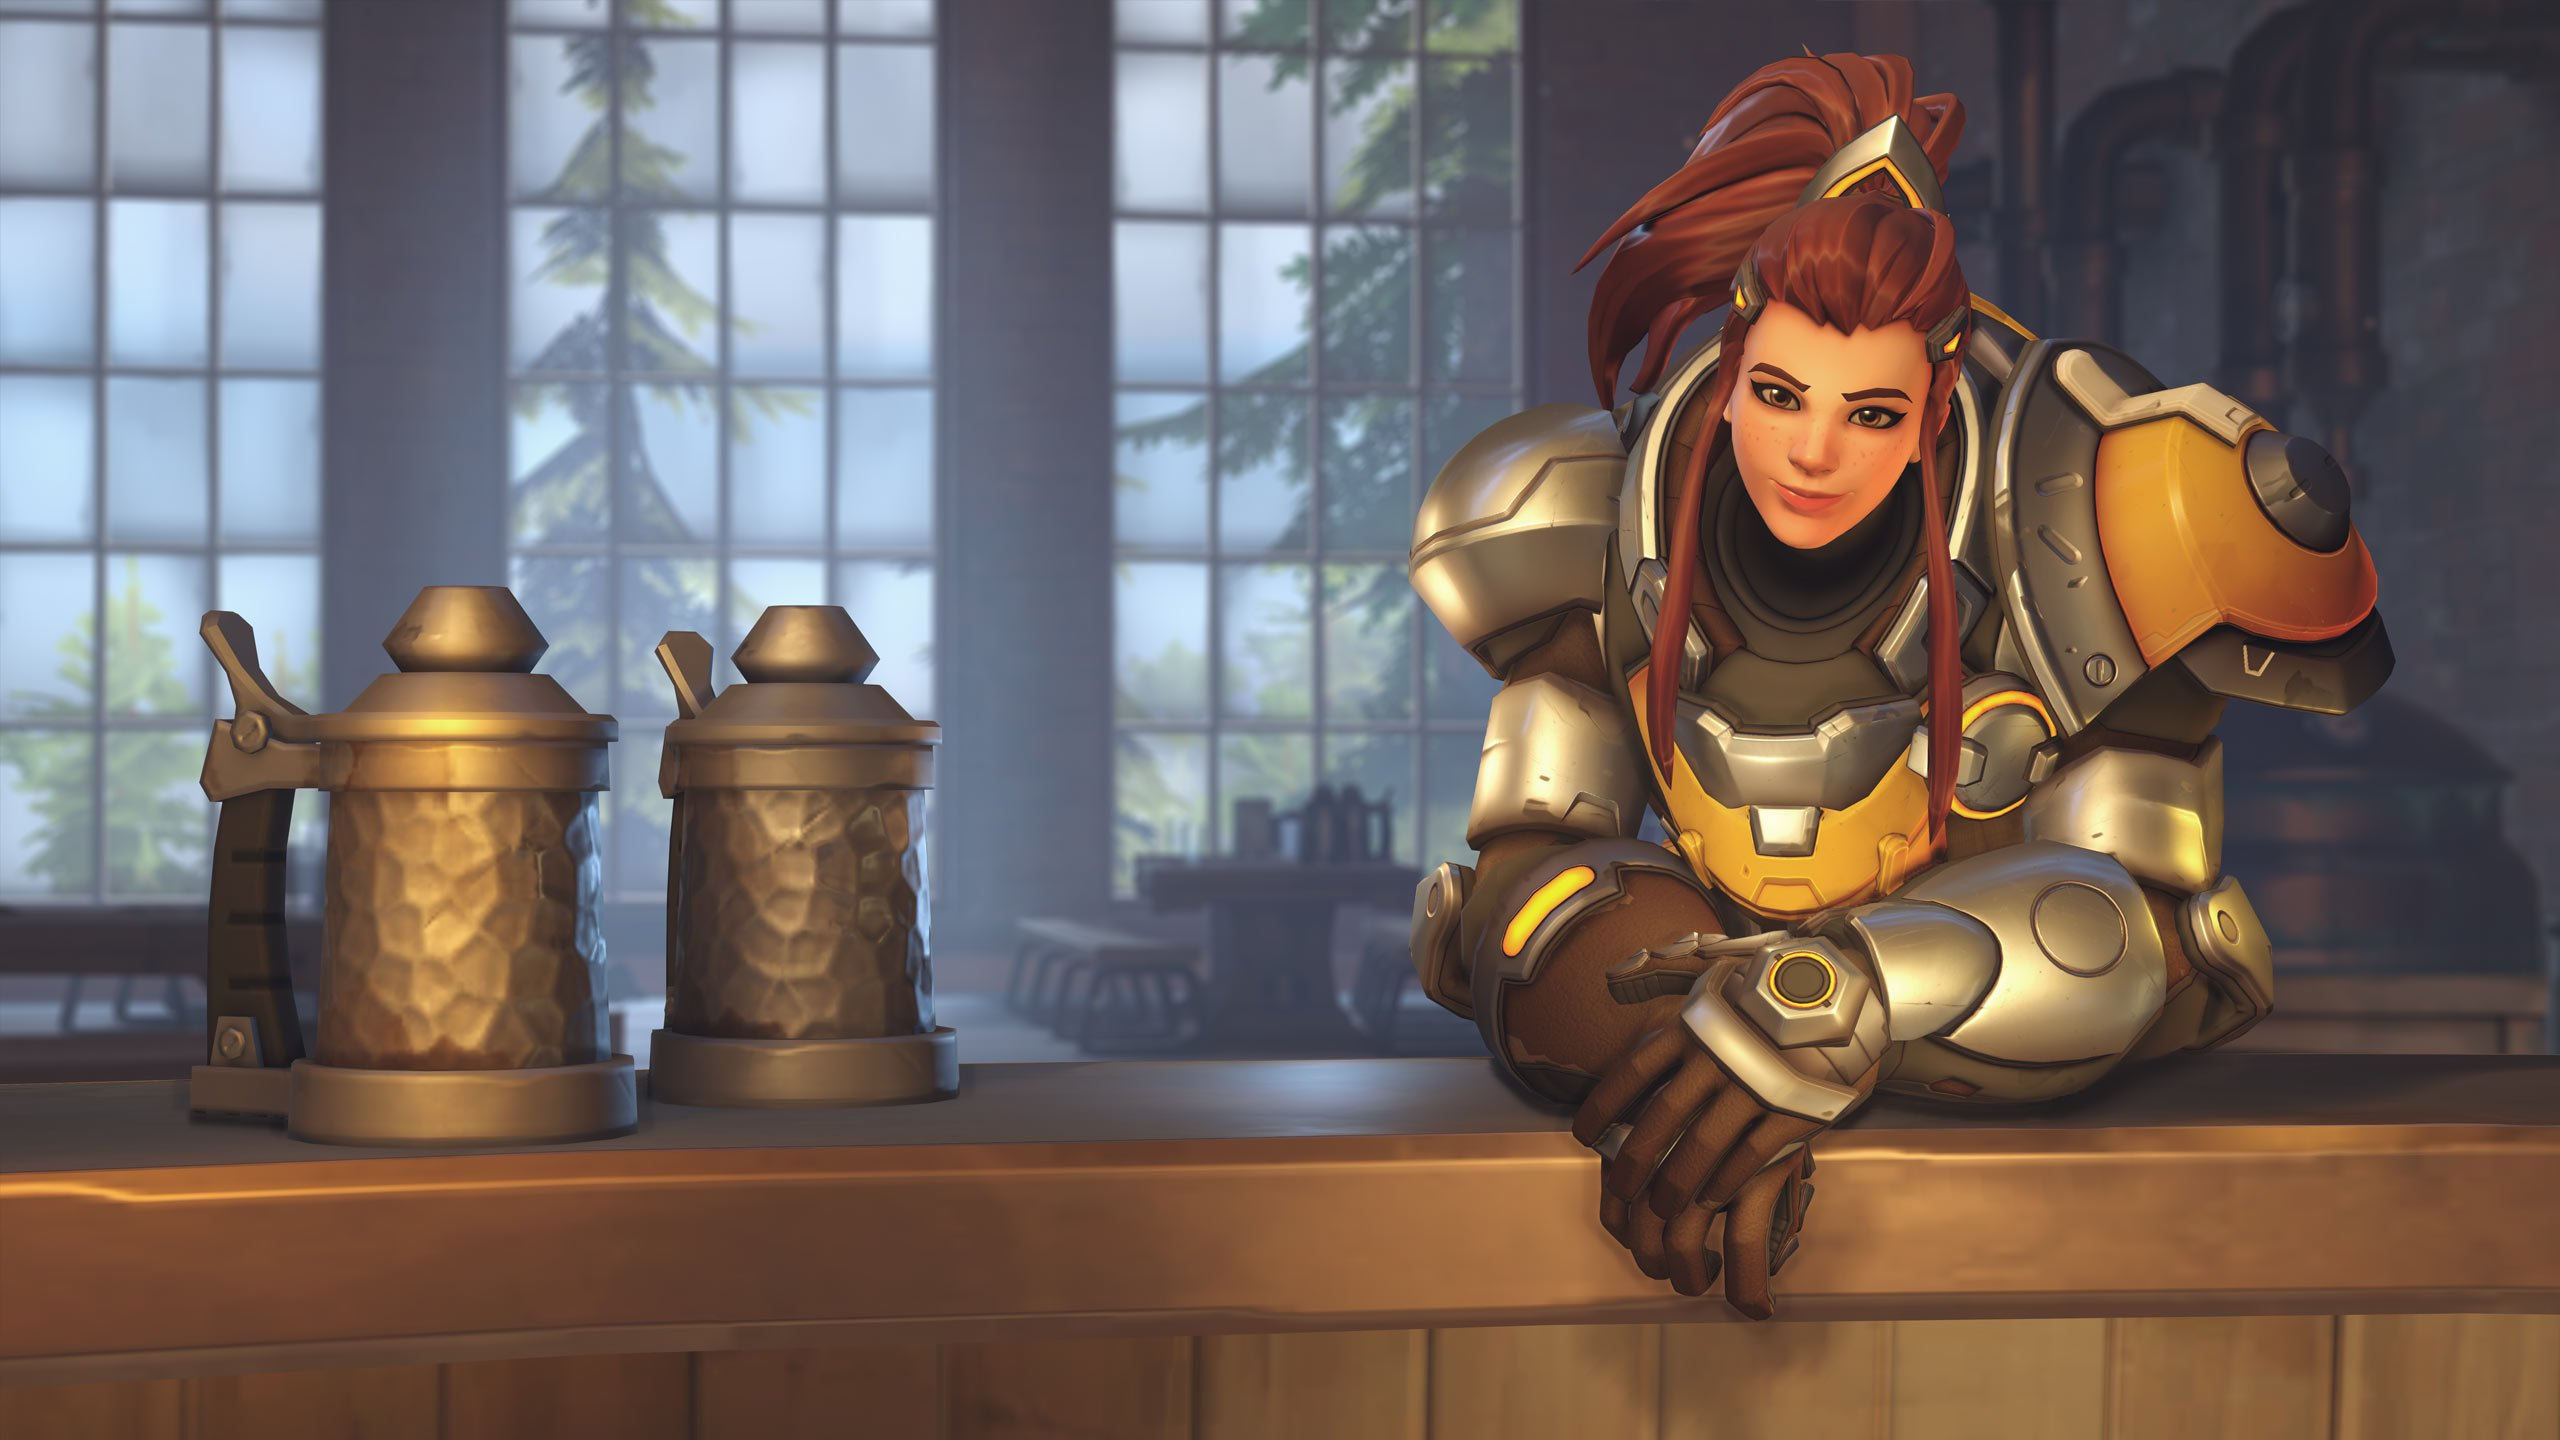 When Brigitte debuts in the Overwatch League next week, she won't have her nerfs in tow screenshot